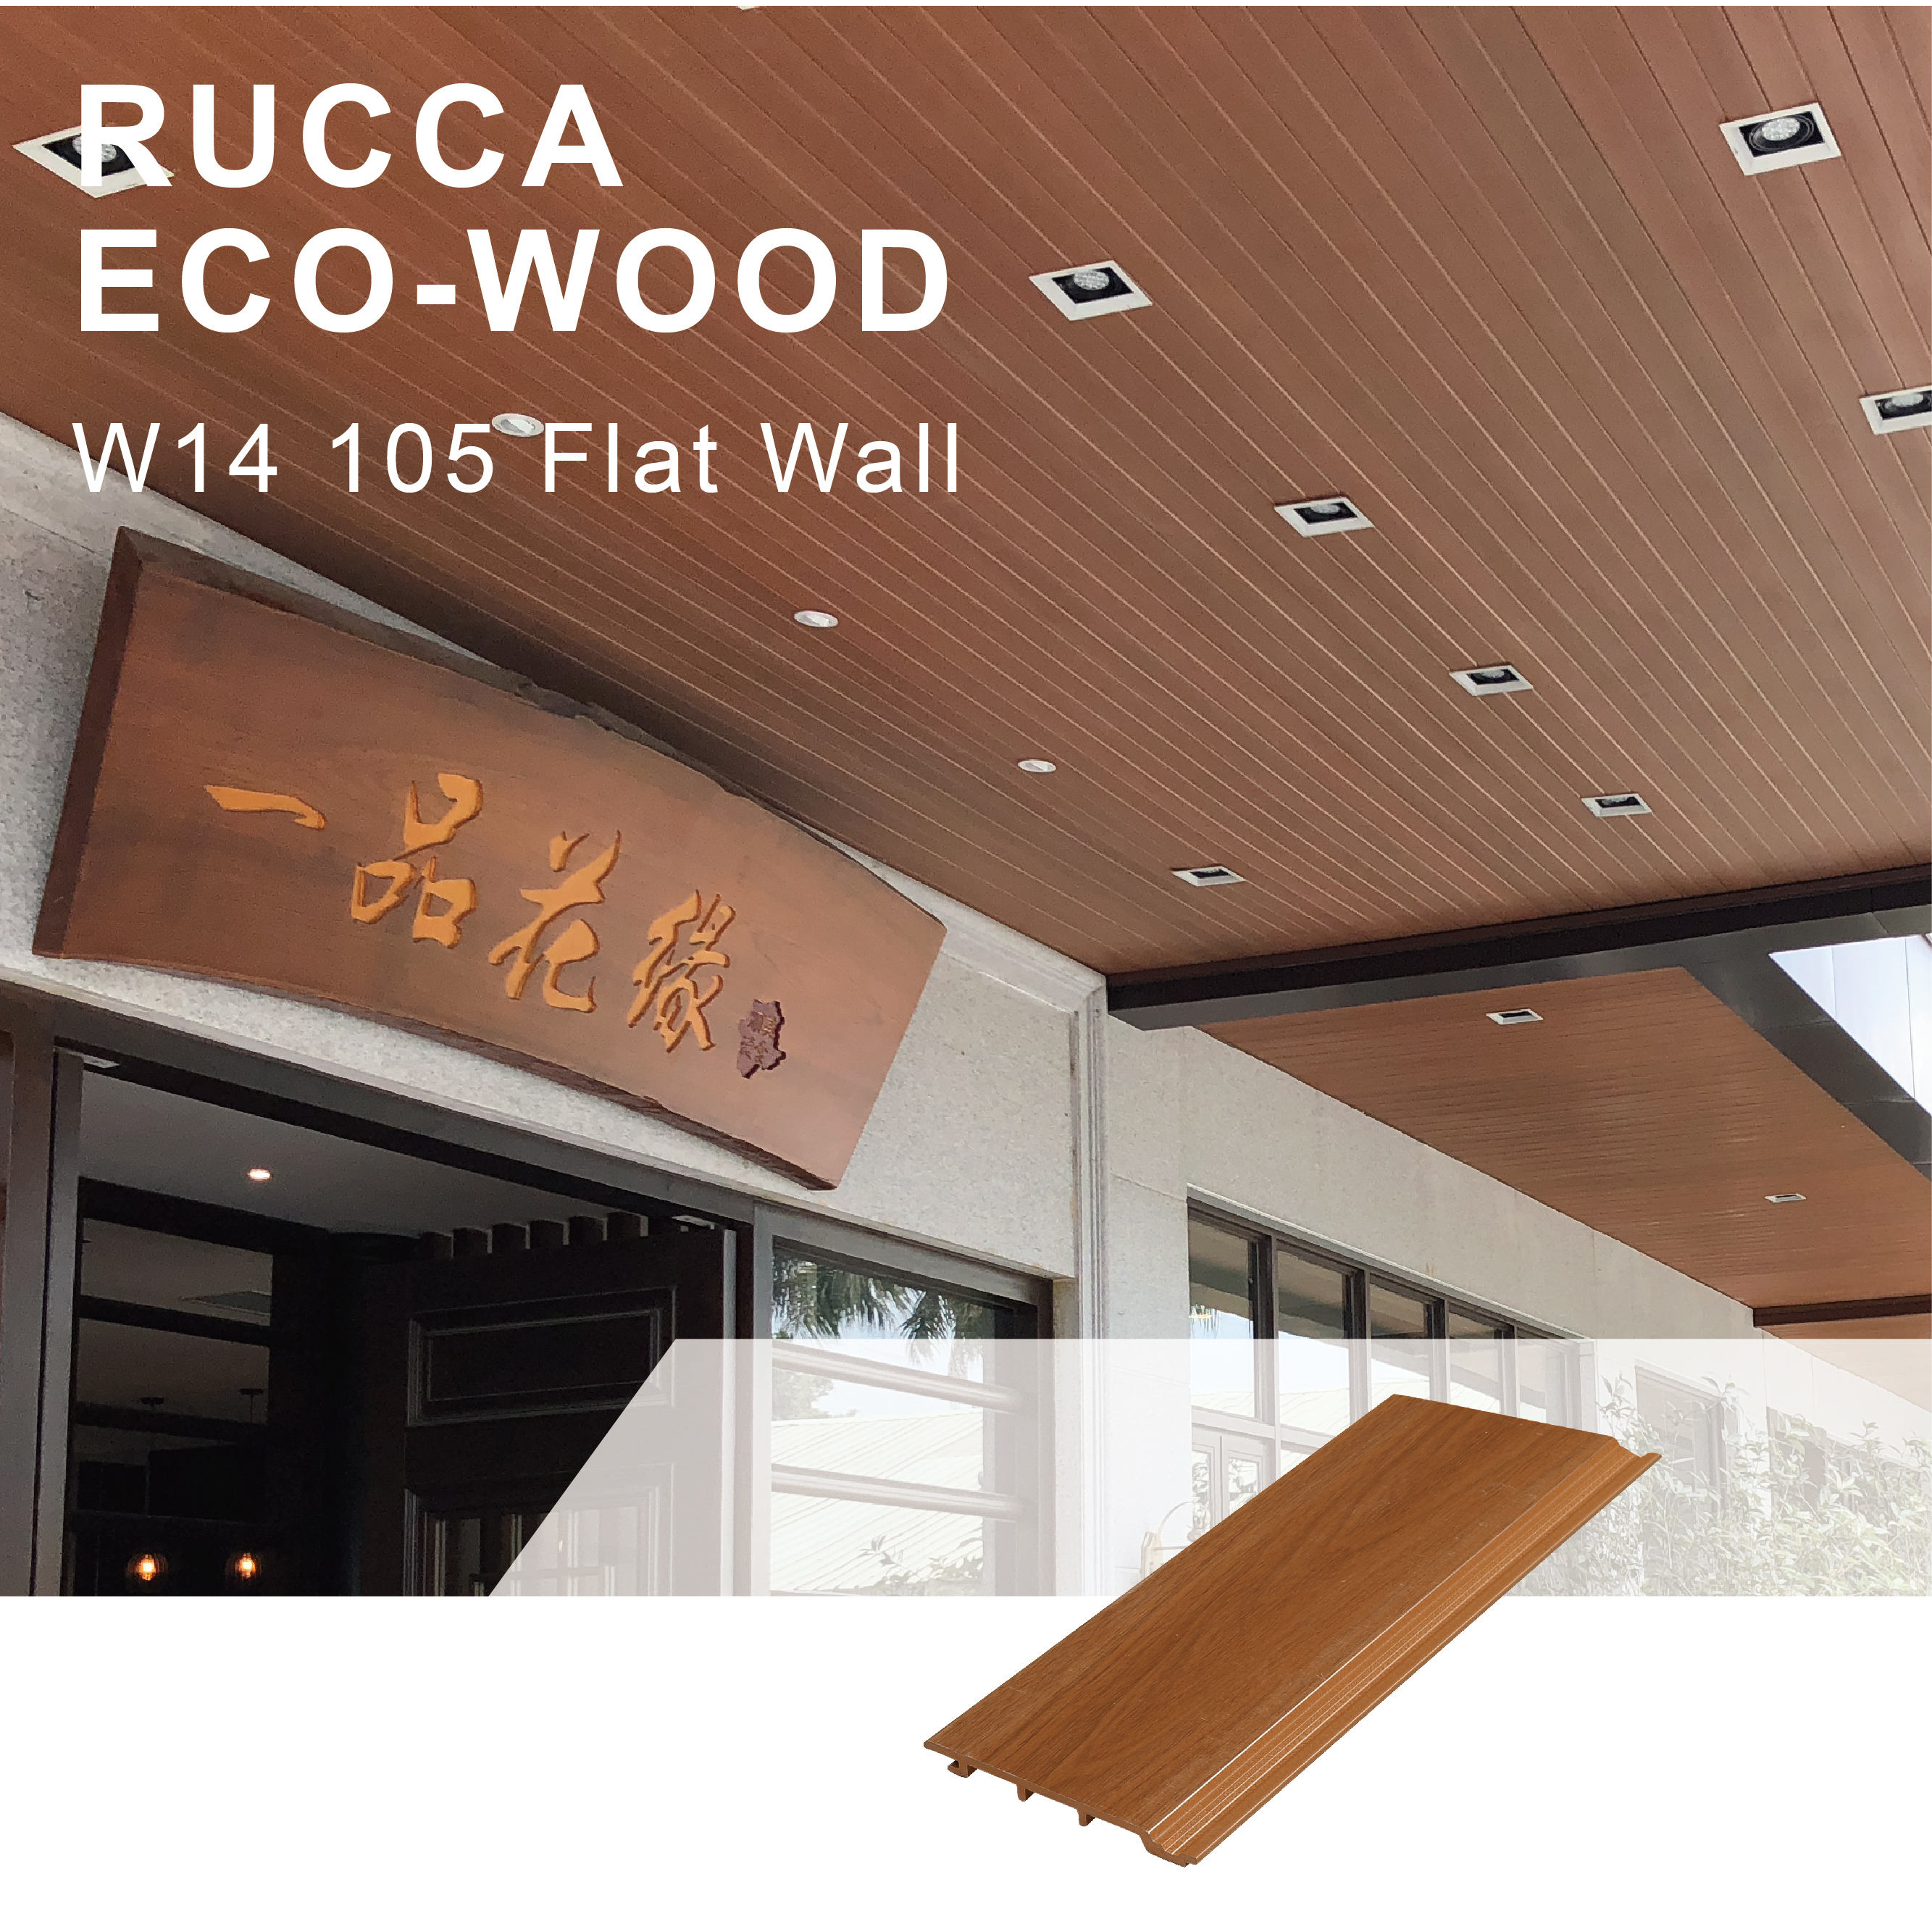 Foshan Wood Plastic PVC Composite Wall Panel, WPC Ceiling Tile for Interior/Exterior Decoration 120*12mm Building Materials